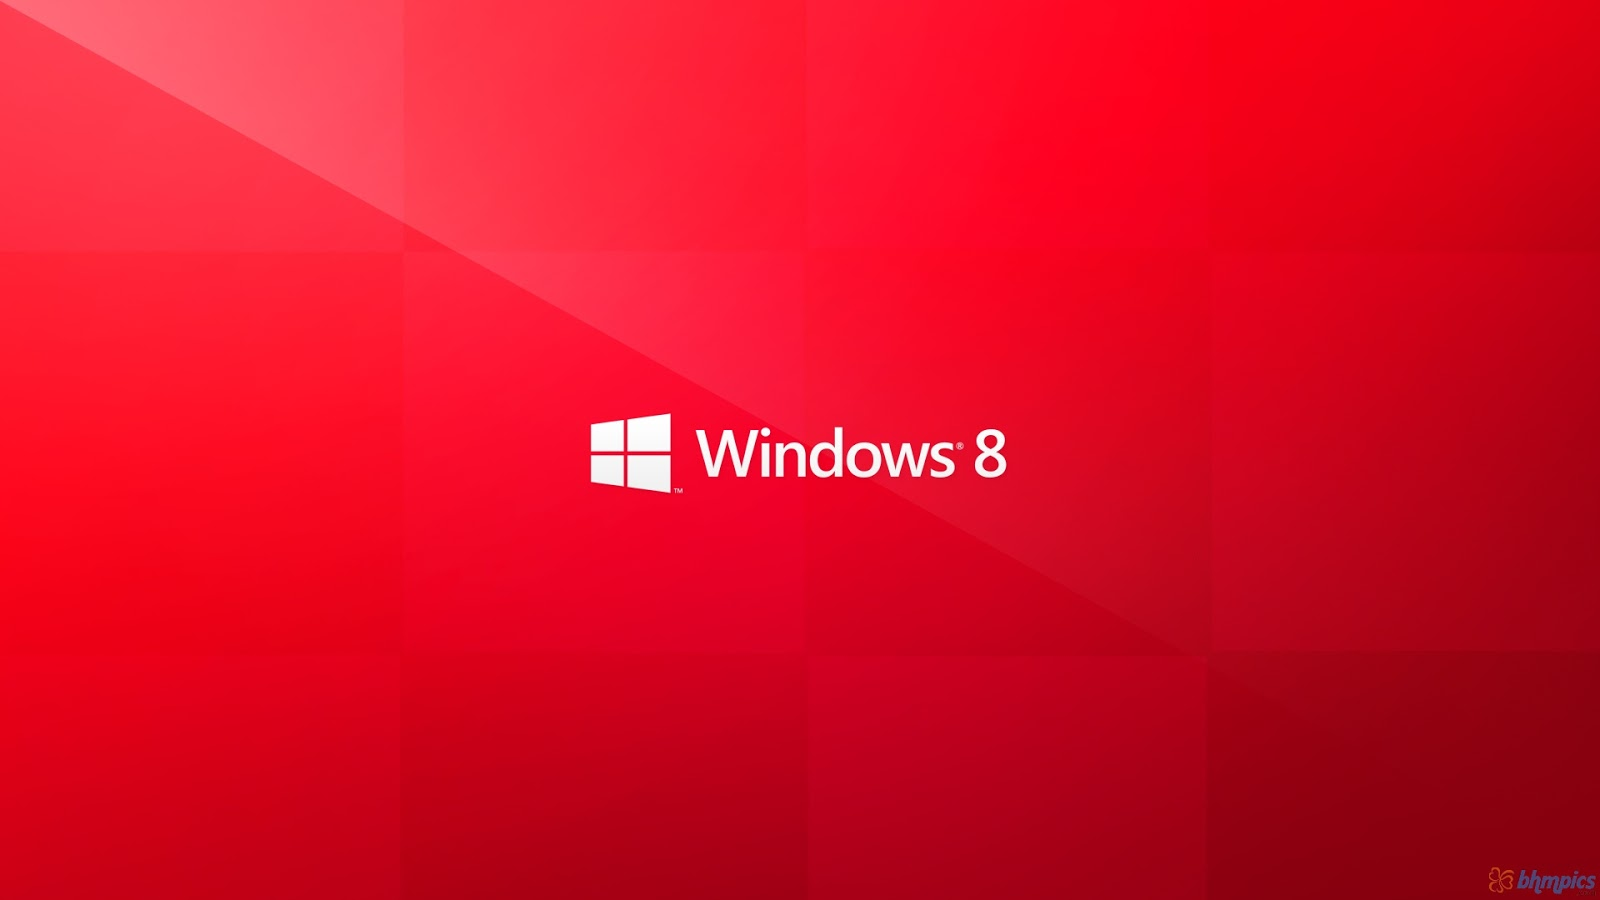 wallpaper windows 8 metro red wallpaper download for desktop pc 1600x900